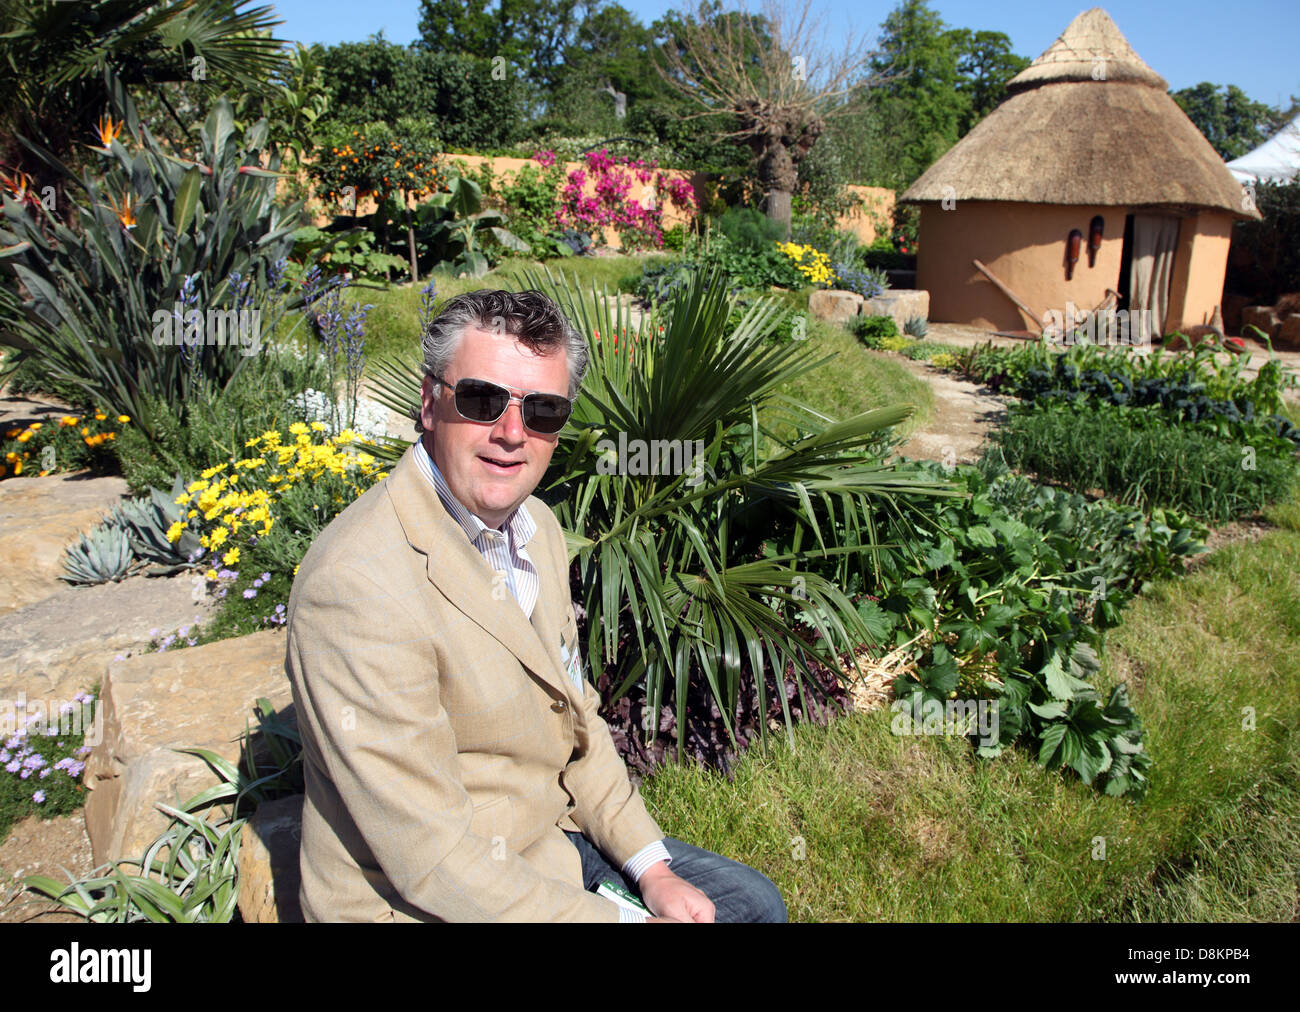 Paul Martin's Gold Medal-winning Concern Worldwide 1000 Days Garden for The Kerry Group, Bloom in the Park, - Stock Image